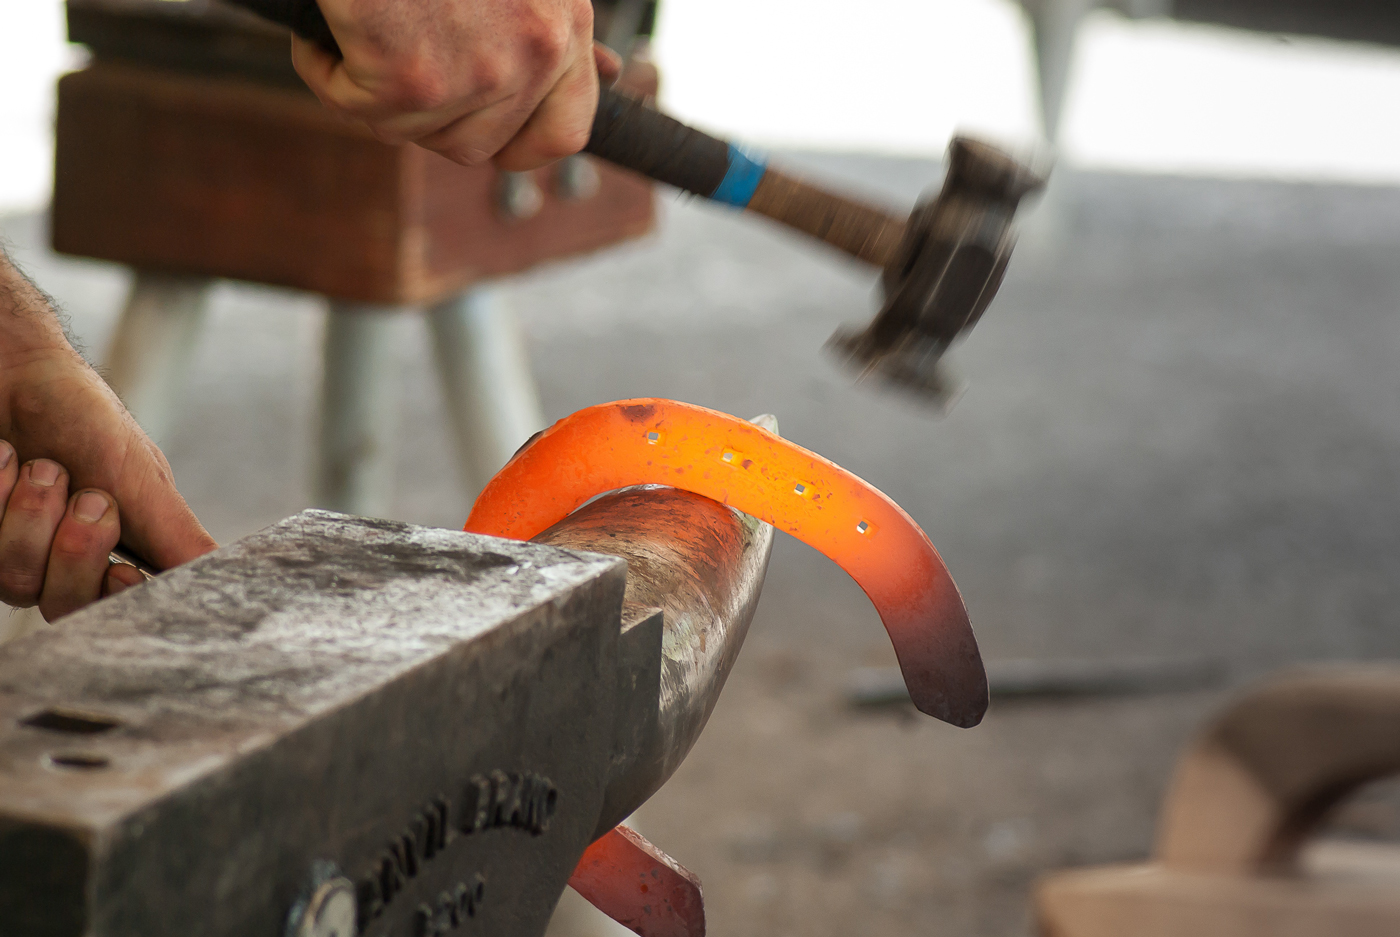 A farrier hammering a horse shoe into place